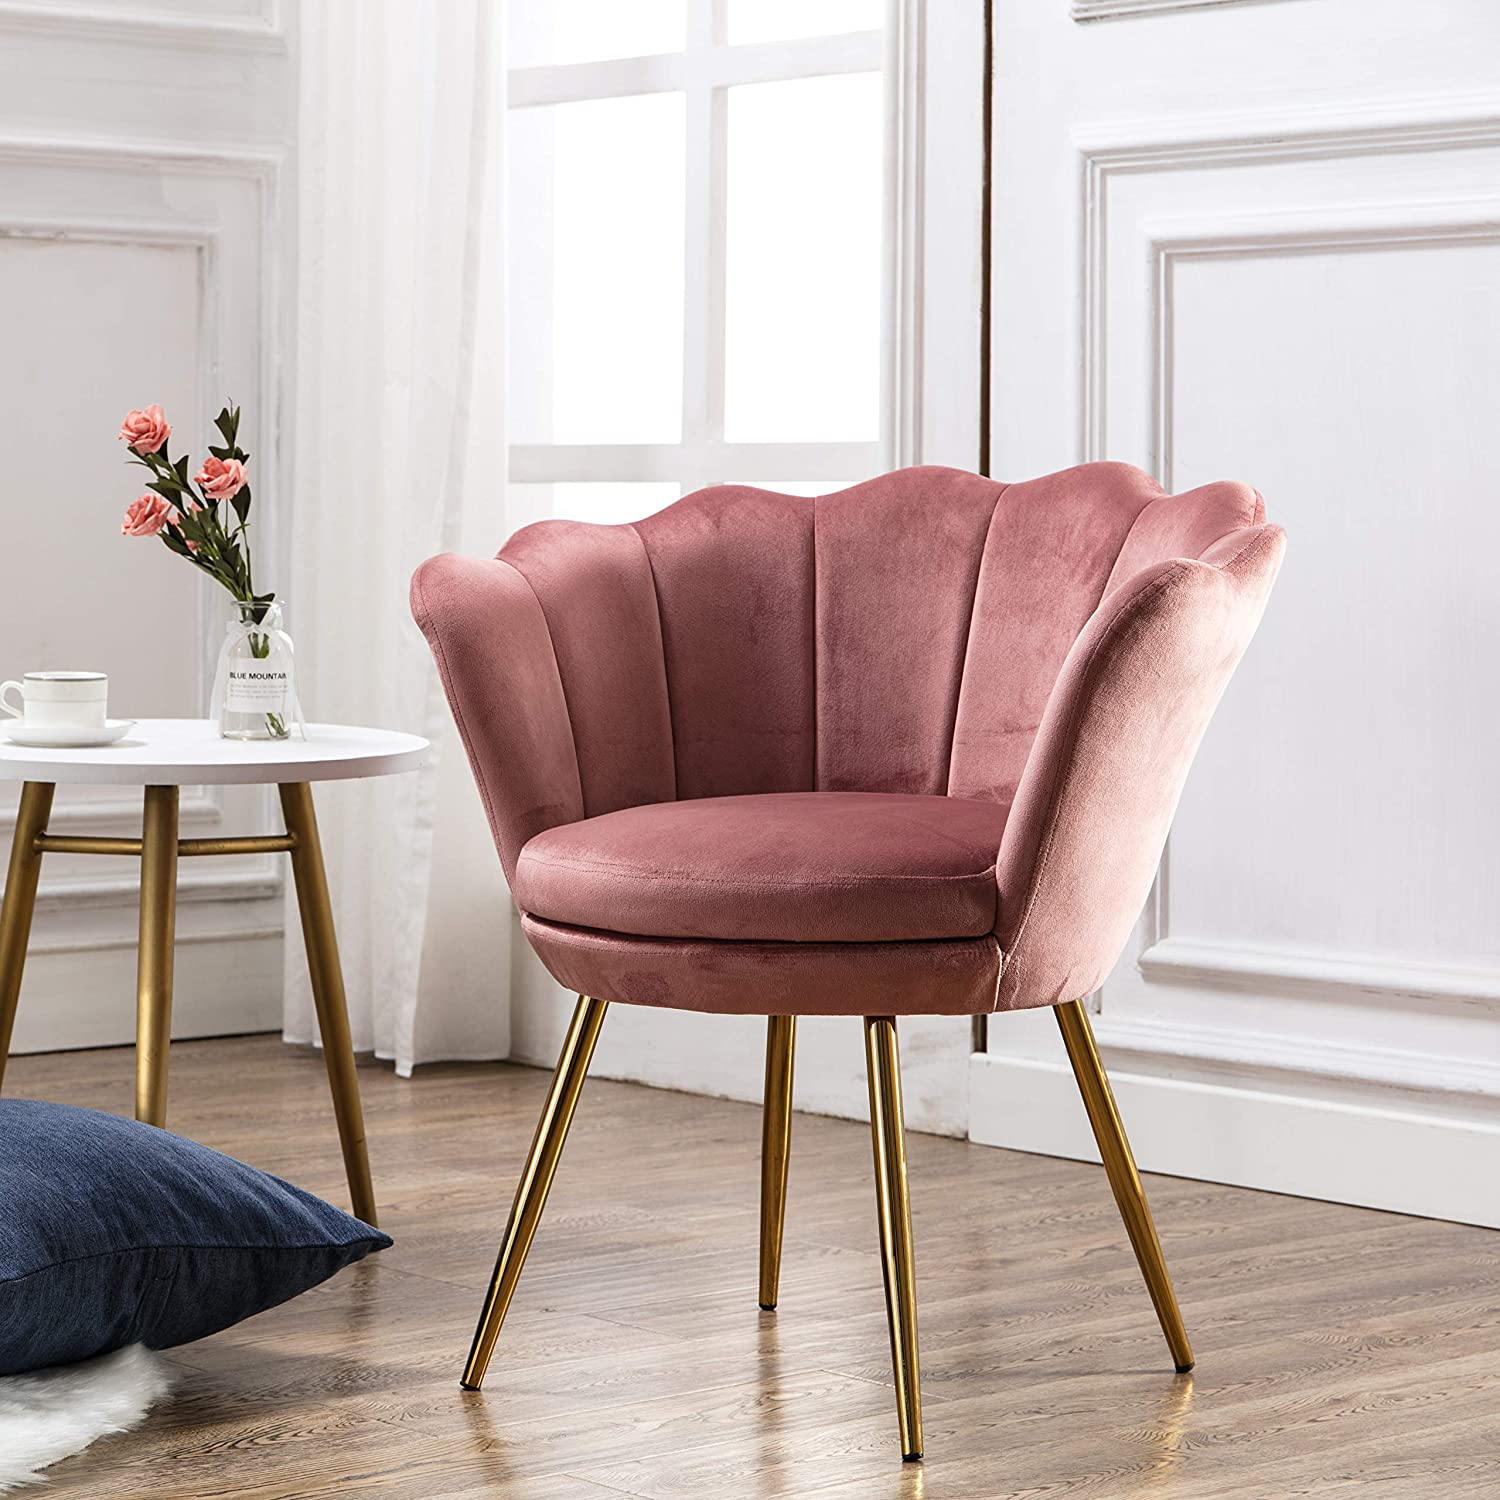 Comfy Upholstered Lotus Vanity Chair, Velvet Accent Armchair